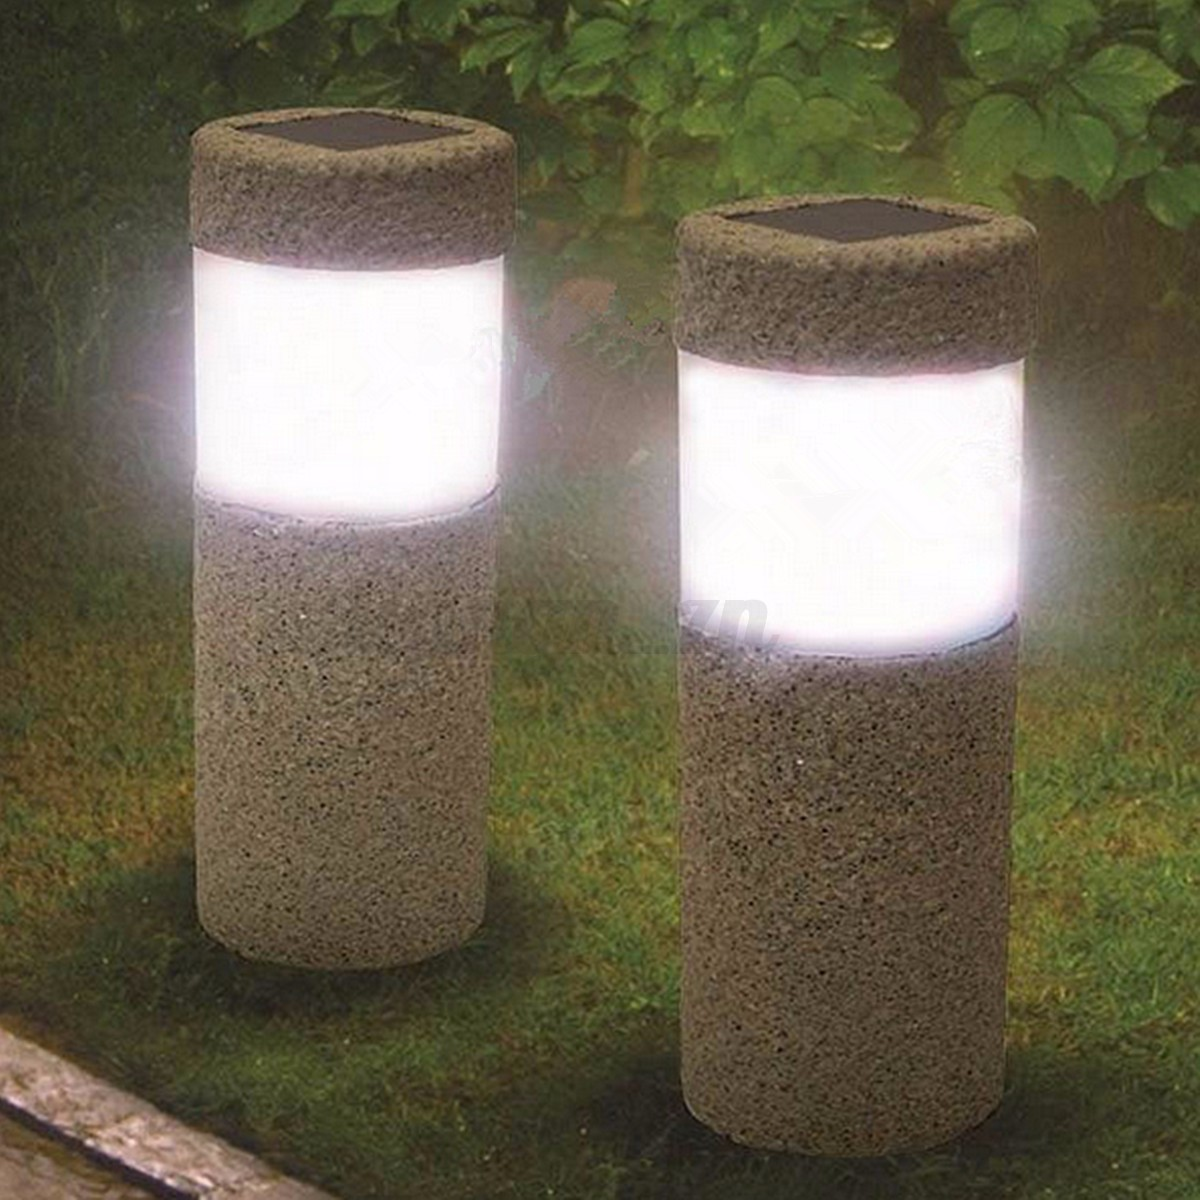 led lampe de jardin terrasse borne d 39 clairage d 39 ext rieur. Black Bedroom Furniture Sets. Home Design Ideas